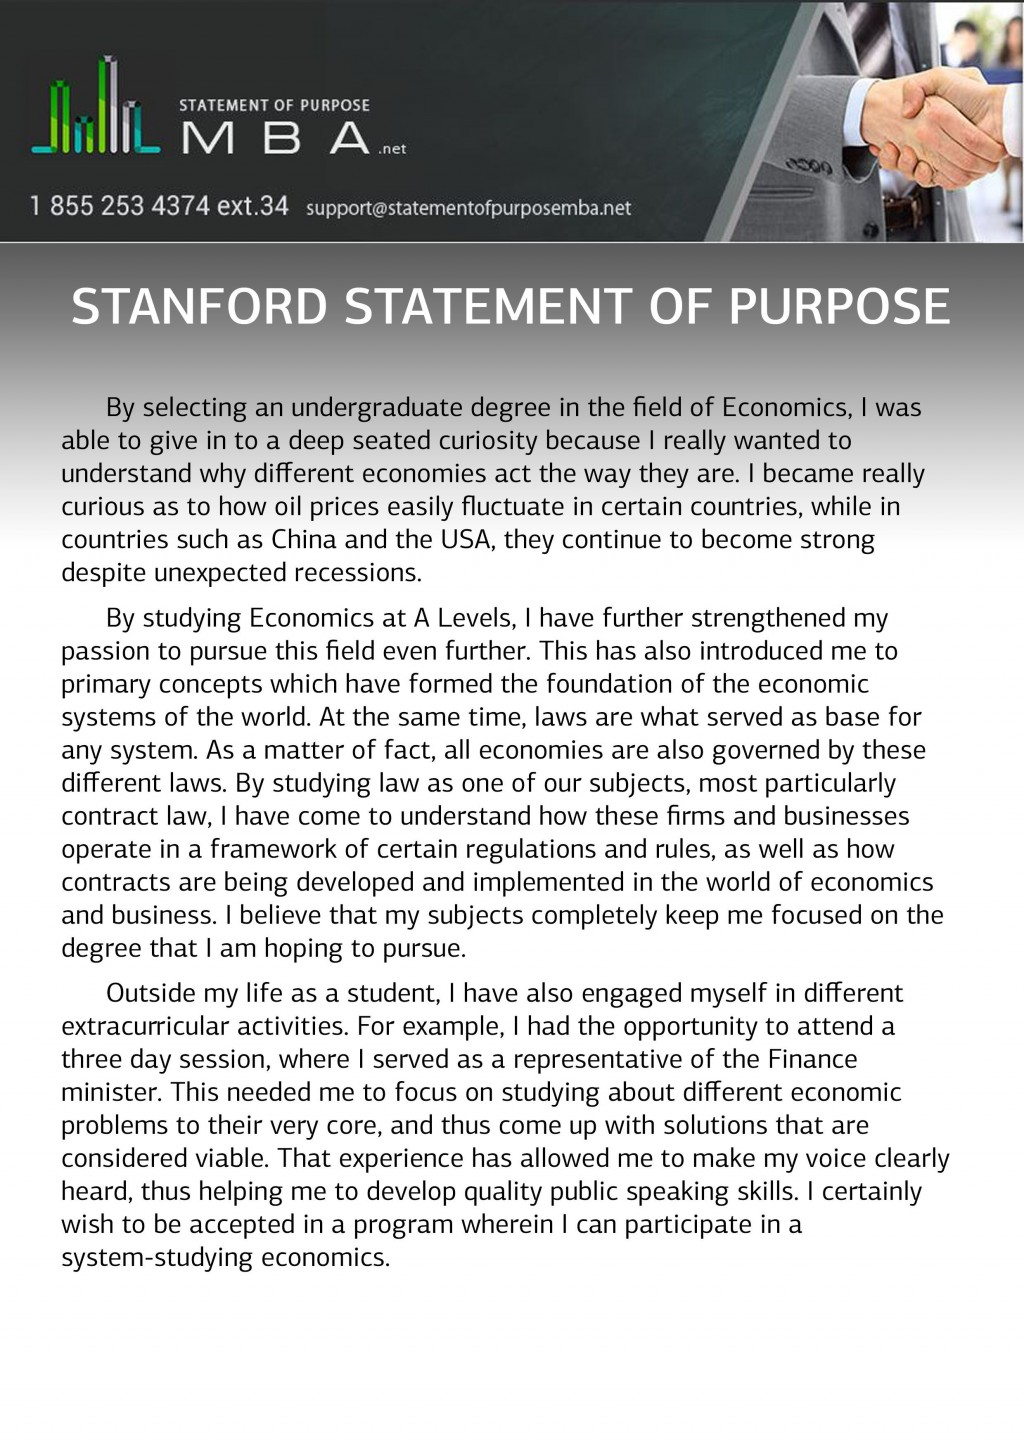 004 Stanford Gsb Essay Top Examples Essays Samples Large